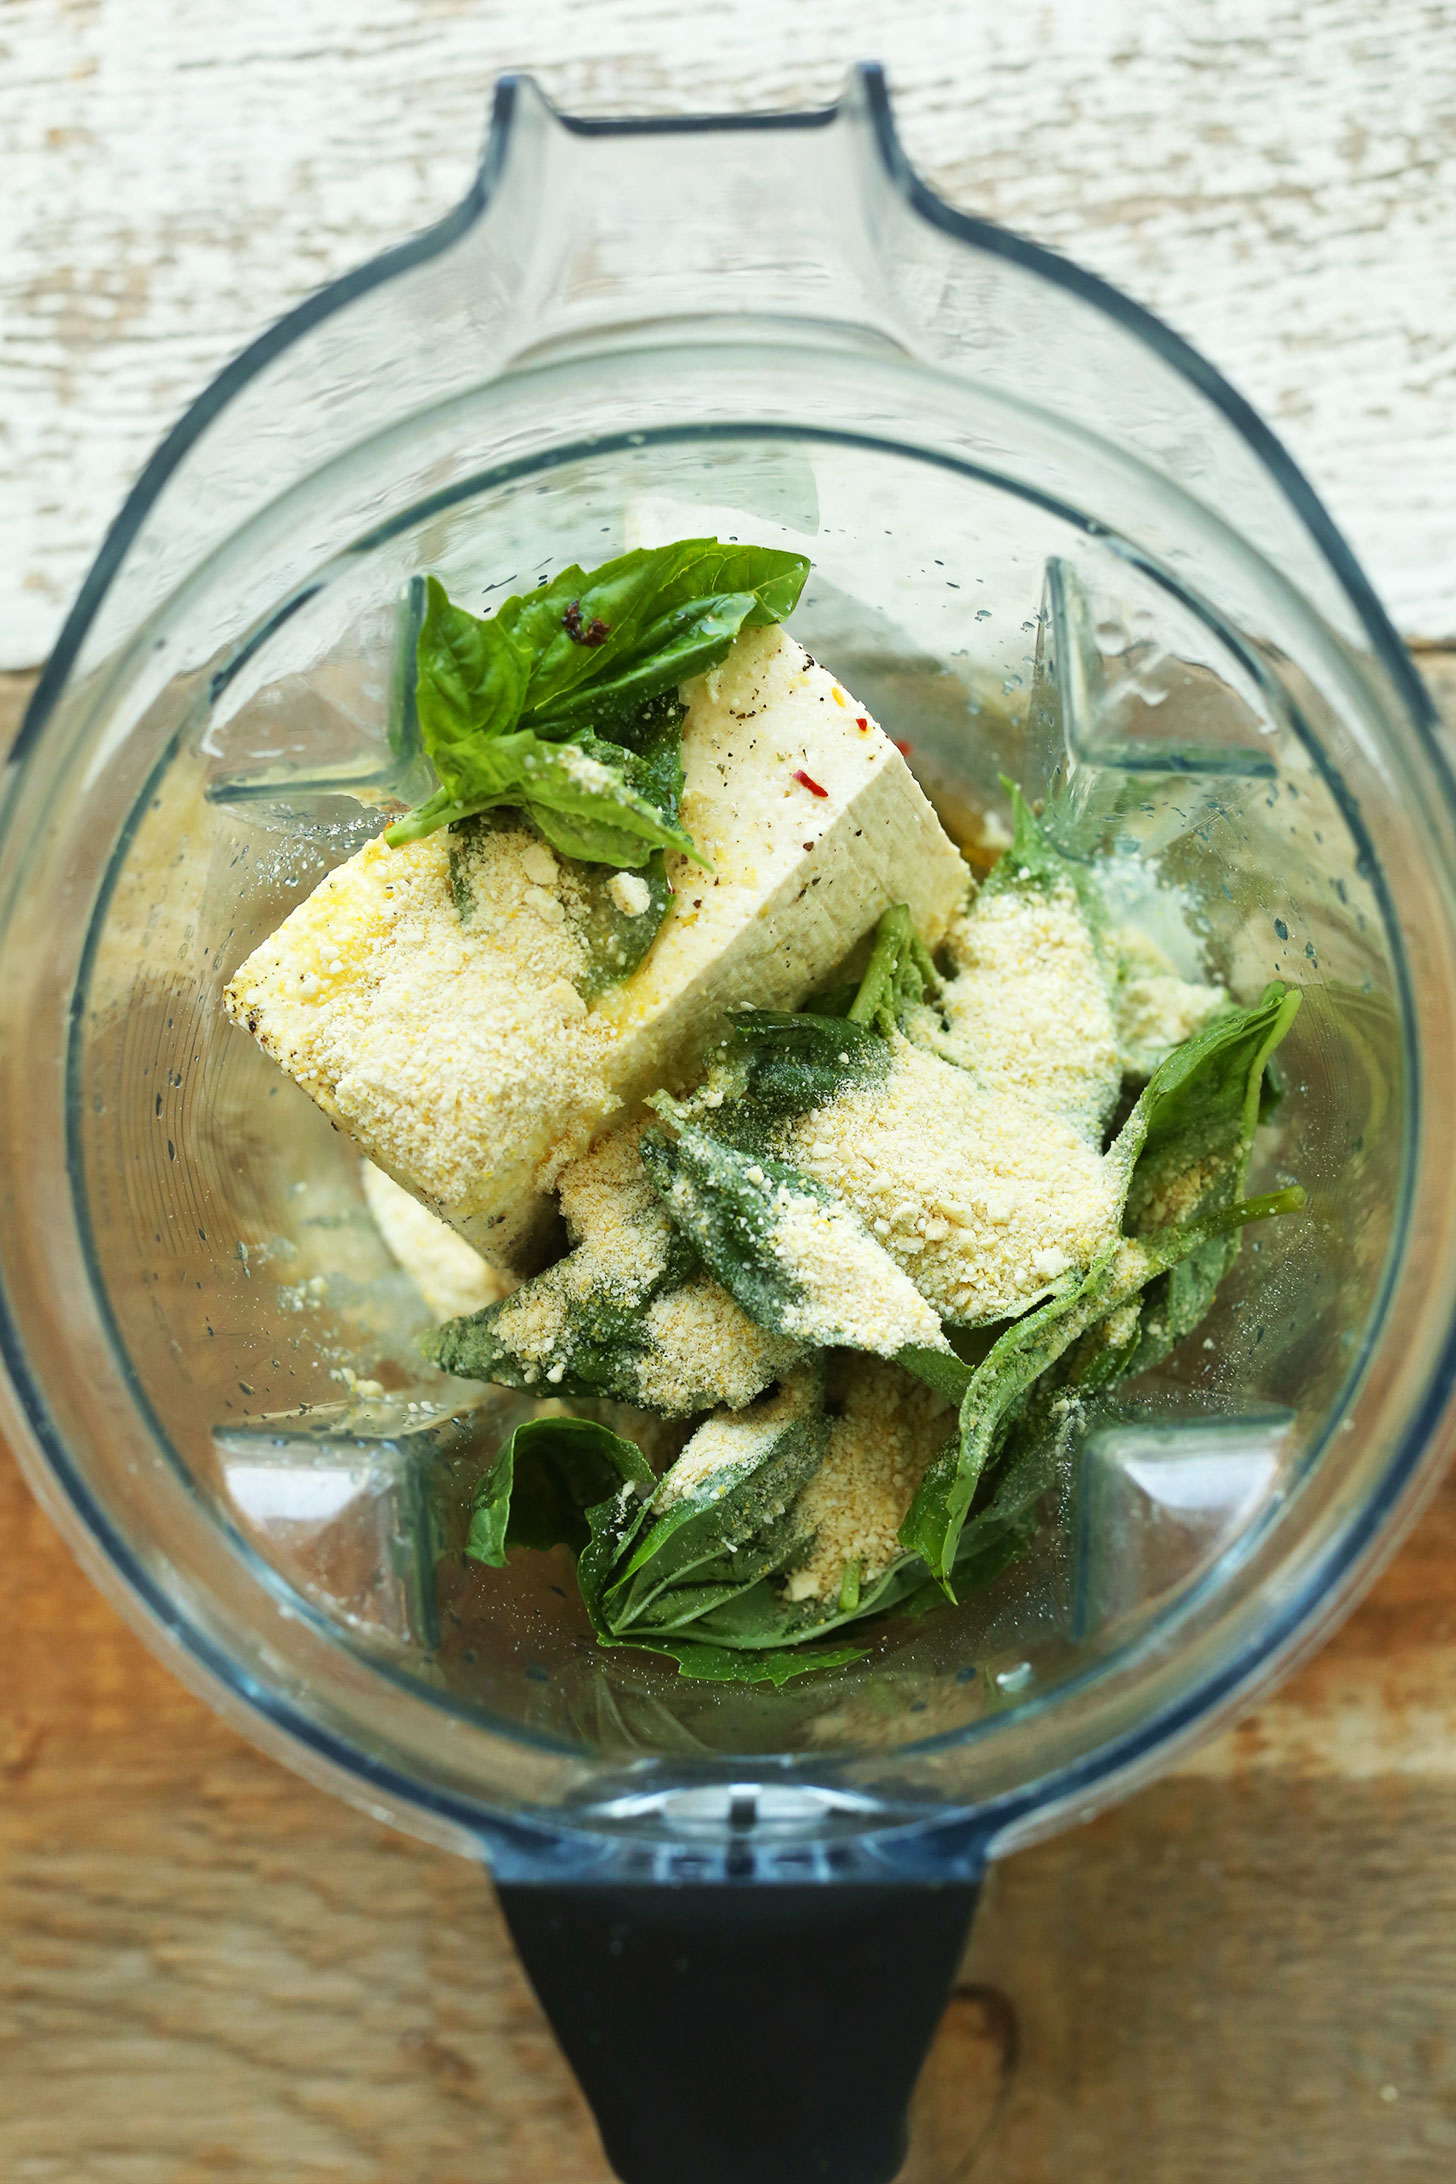 Making easy tofu ricotta in a blender